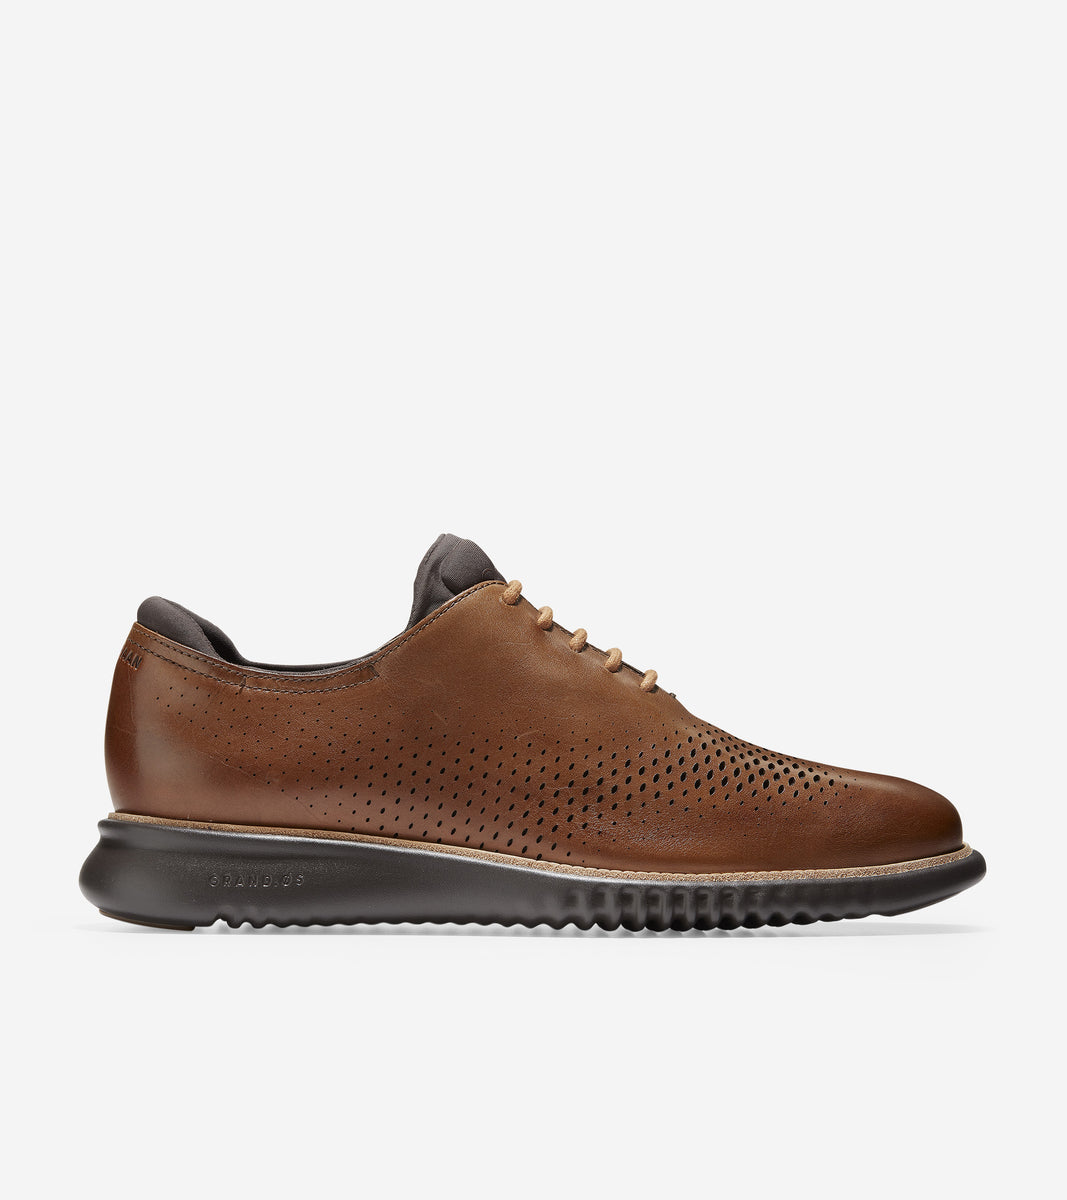 2.ZERØGRAND Lined Laser Wingtip Oxford